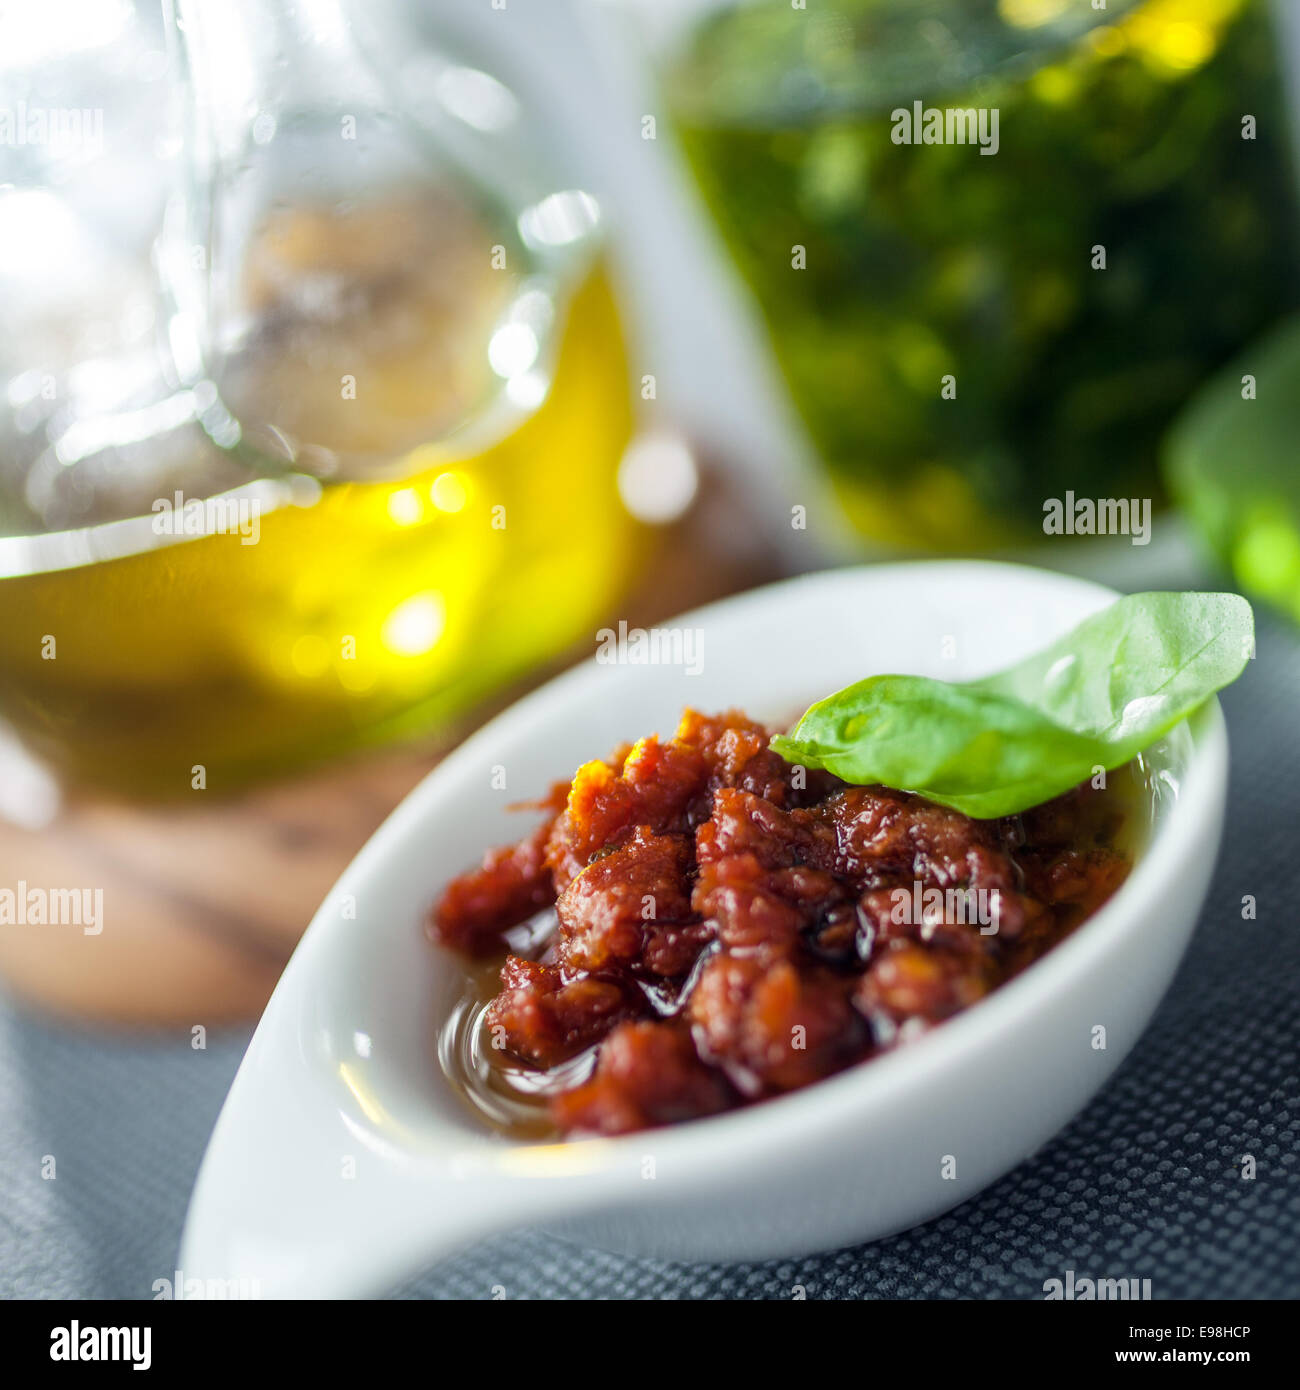 Savory accompaniments served in a restaurant with a bowl of piquant chutney or spicy dip, virgin olive oil, and - Stock Image